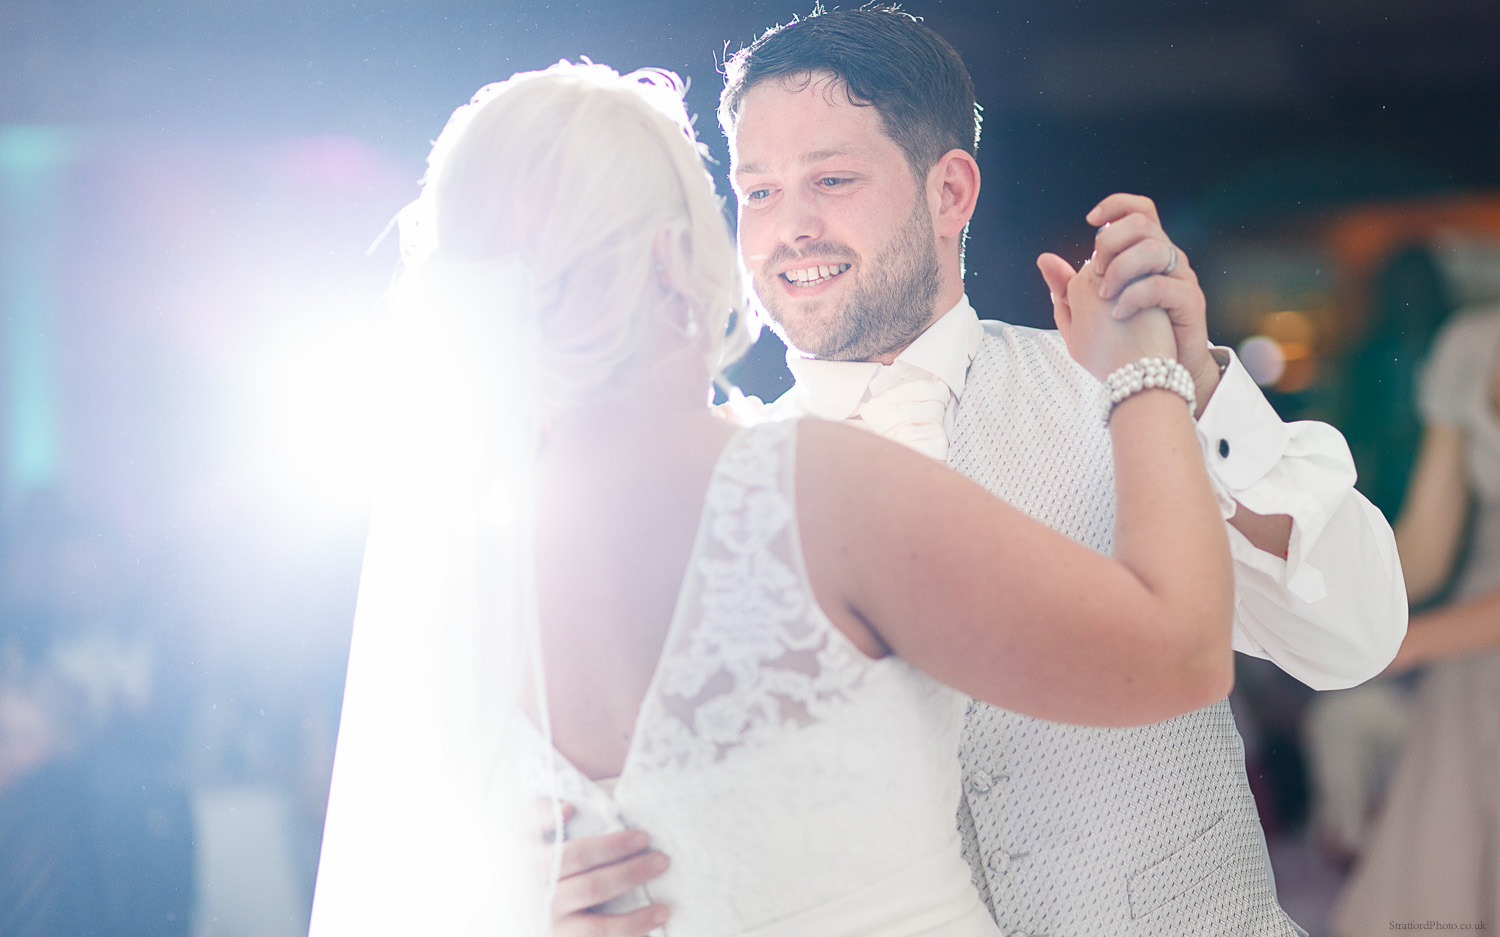 Bride and Groom share a romantic first dance in dramatic cinematic light